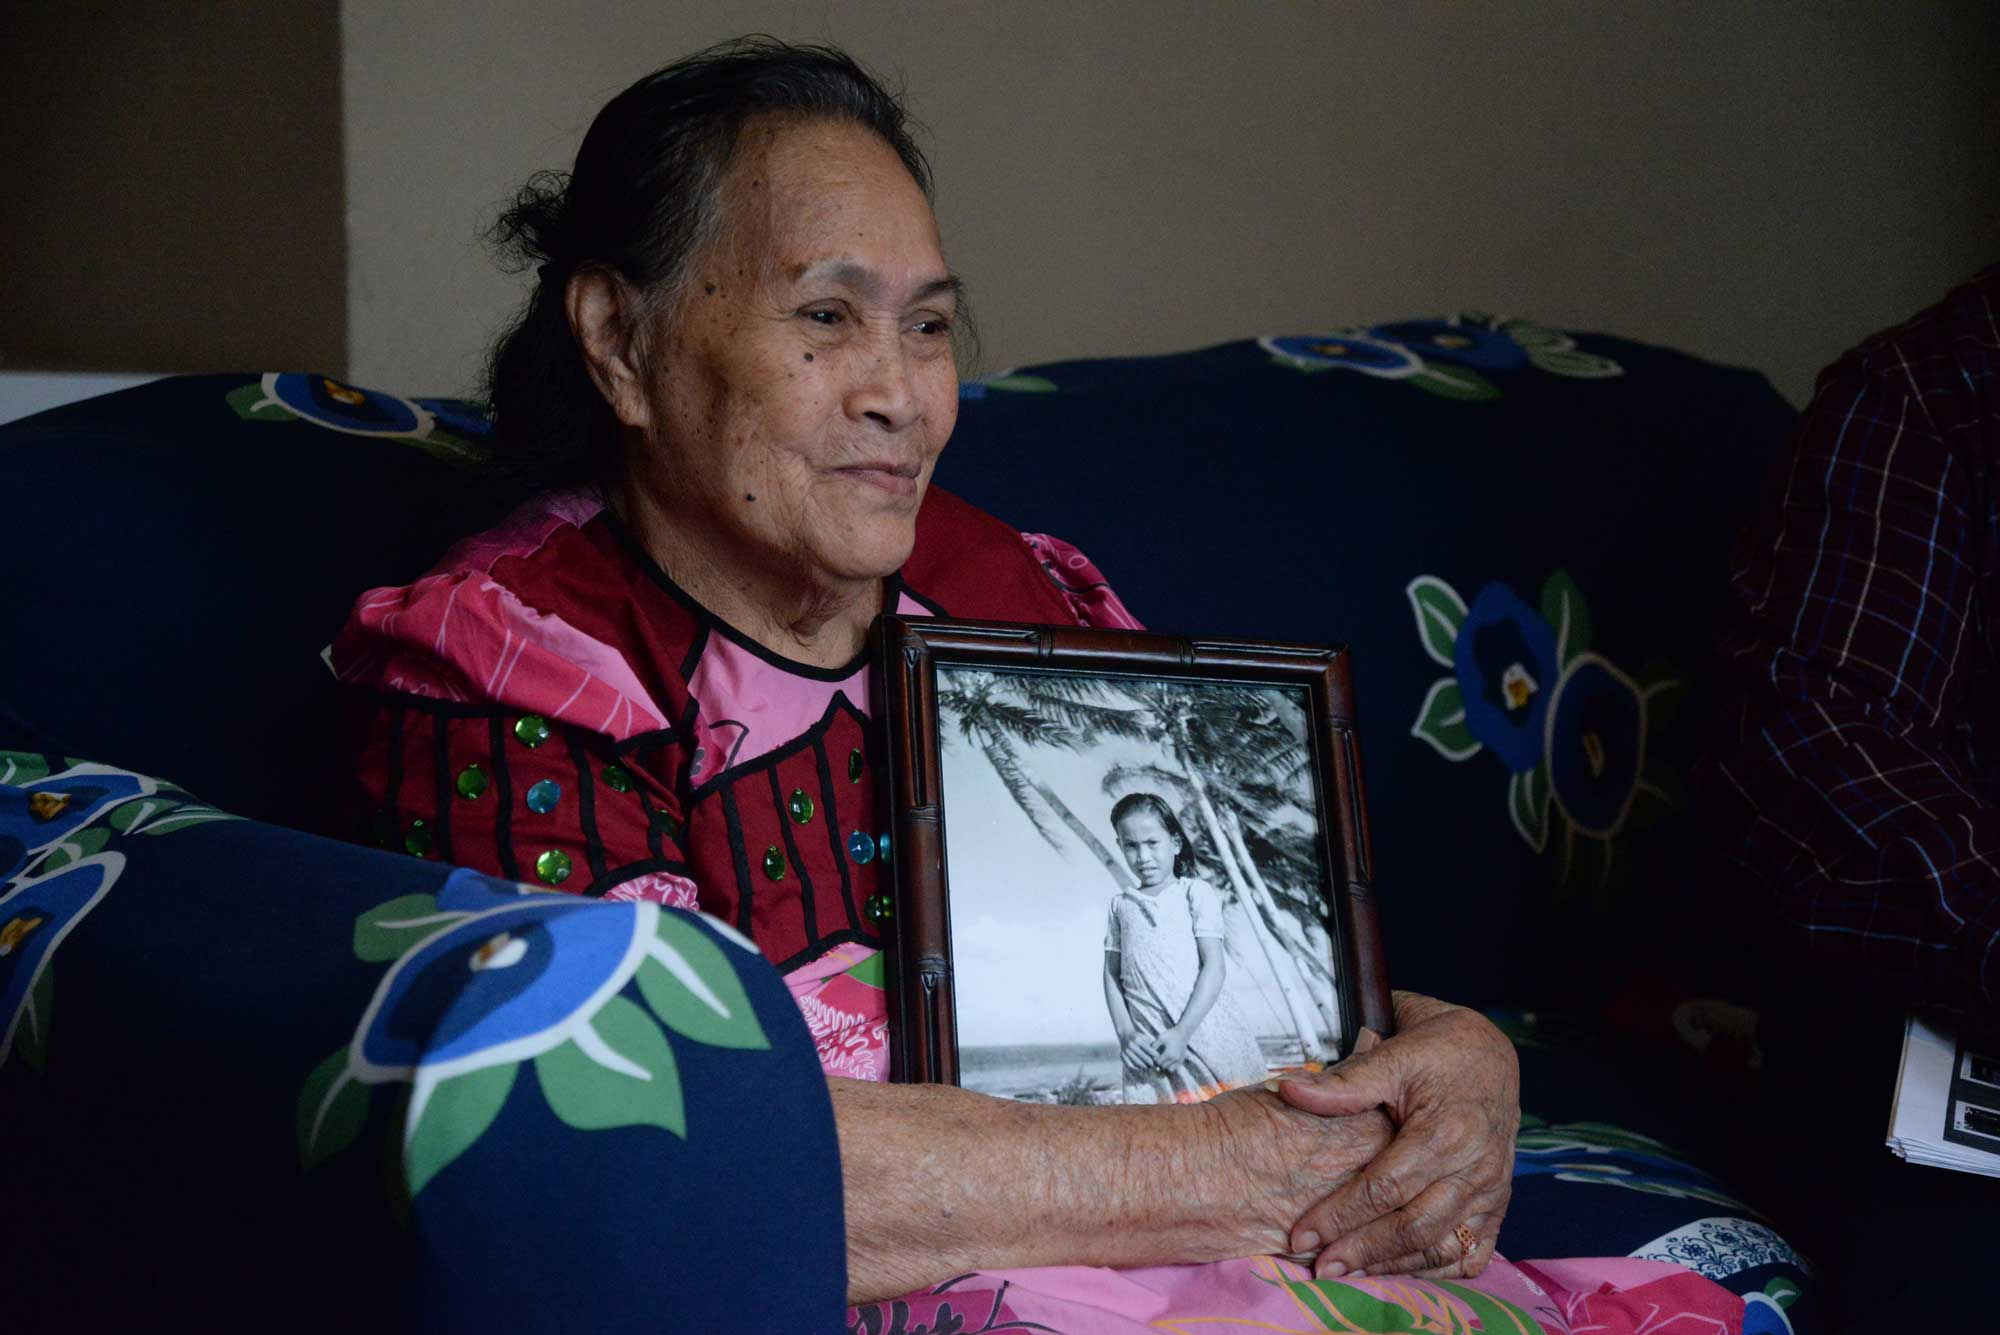 Sitting on a couch, Mojina Mote holds a framed photo of herself as a young girl.